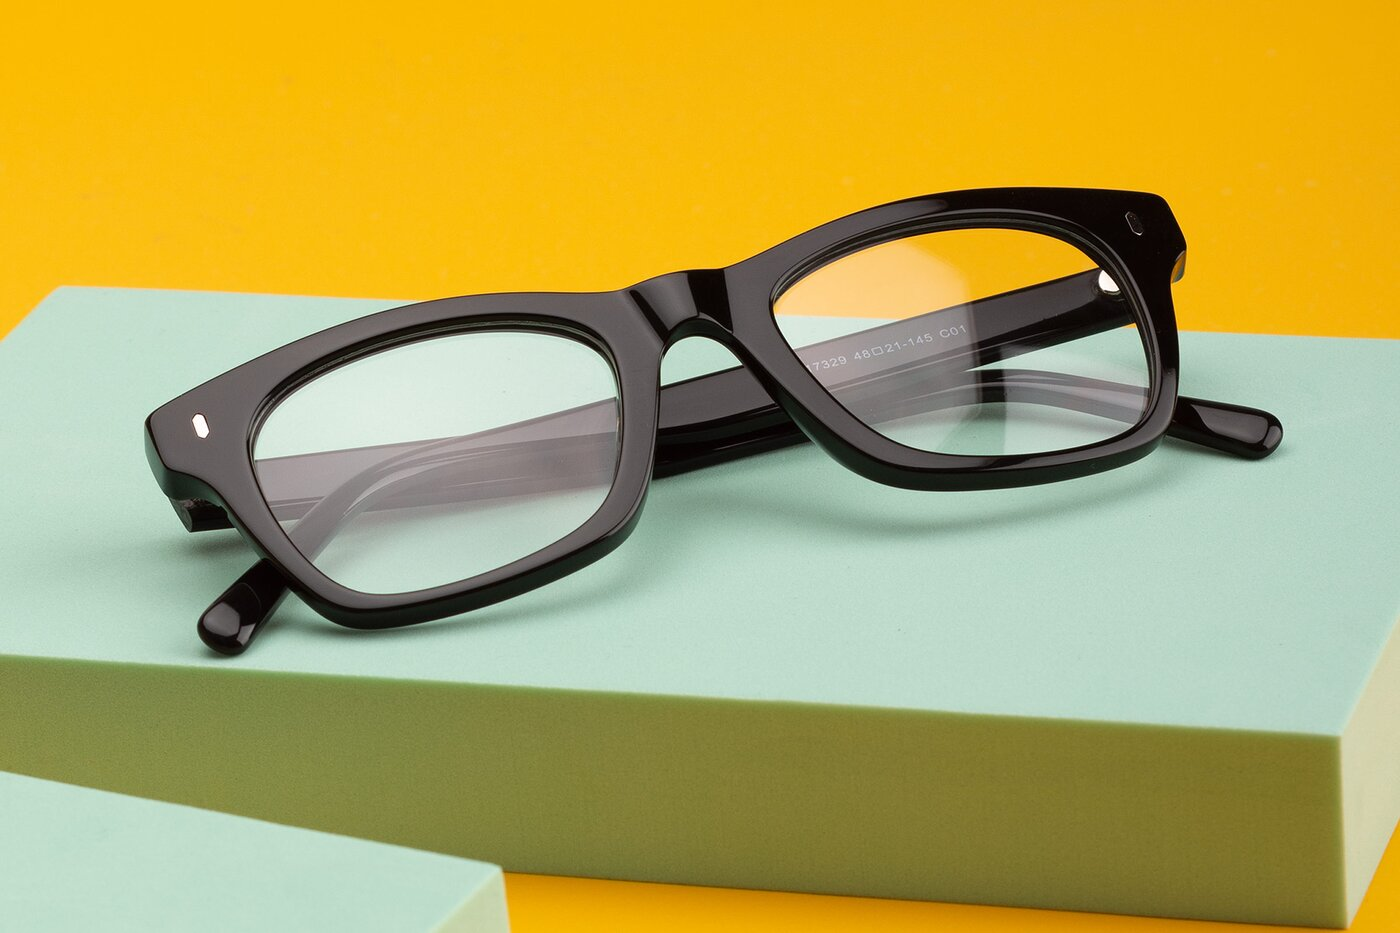 Black Geek-Chic Horn-Rimmed Square Eyeglasses